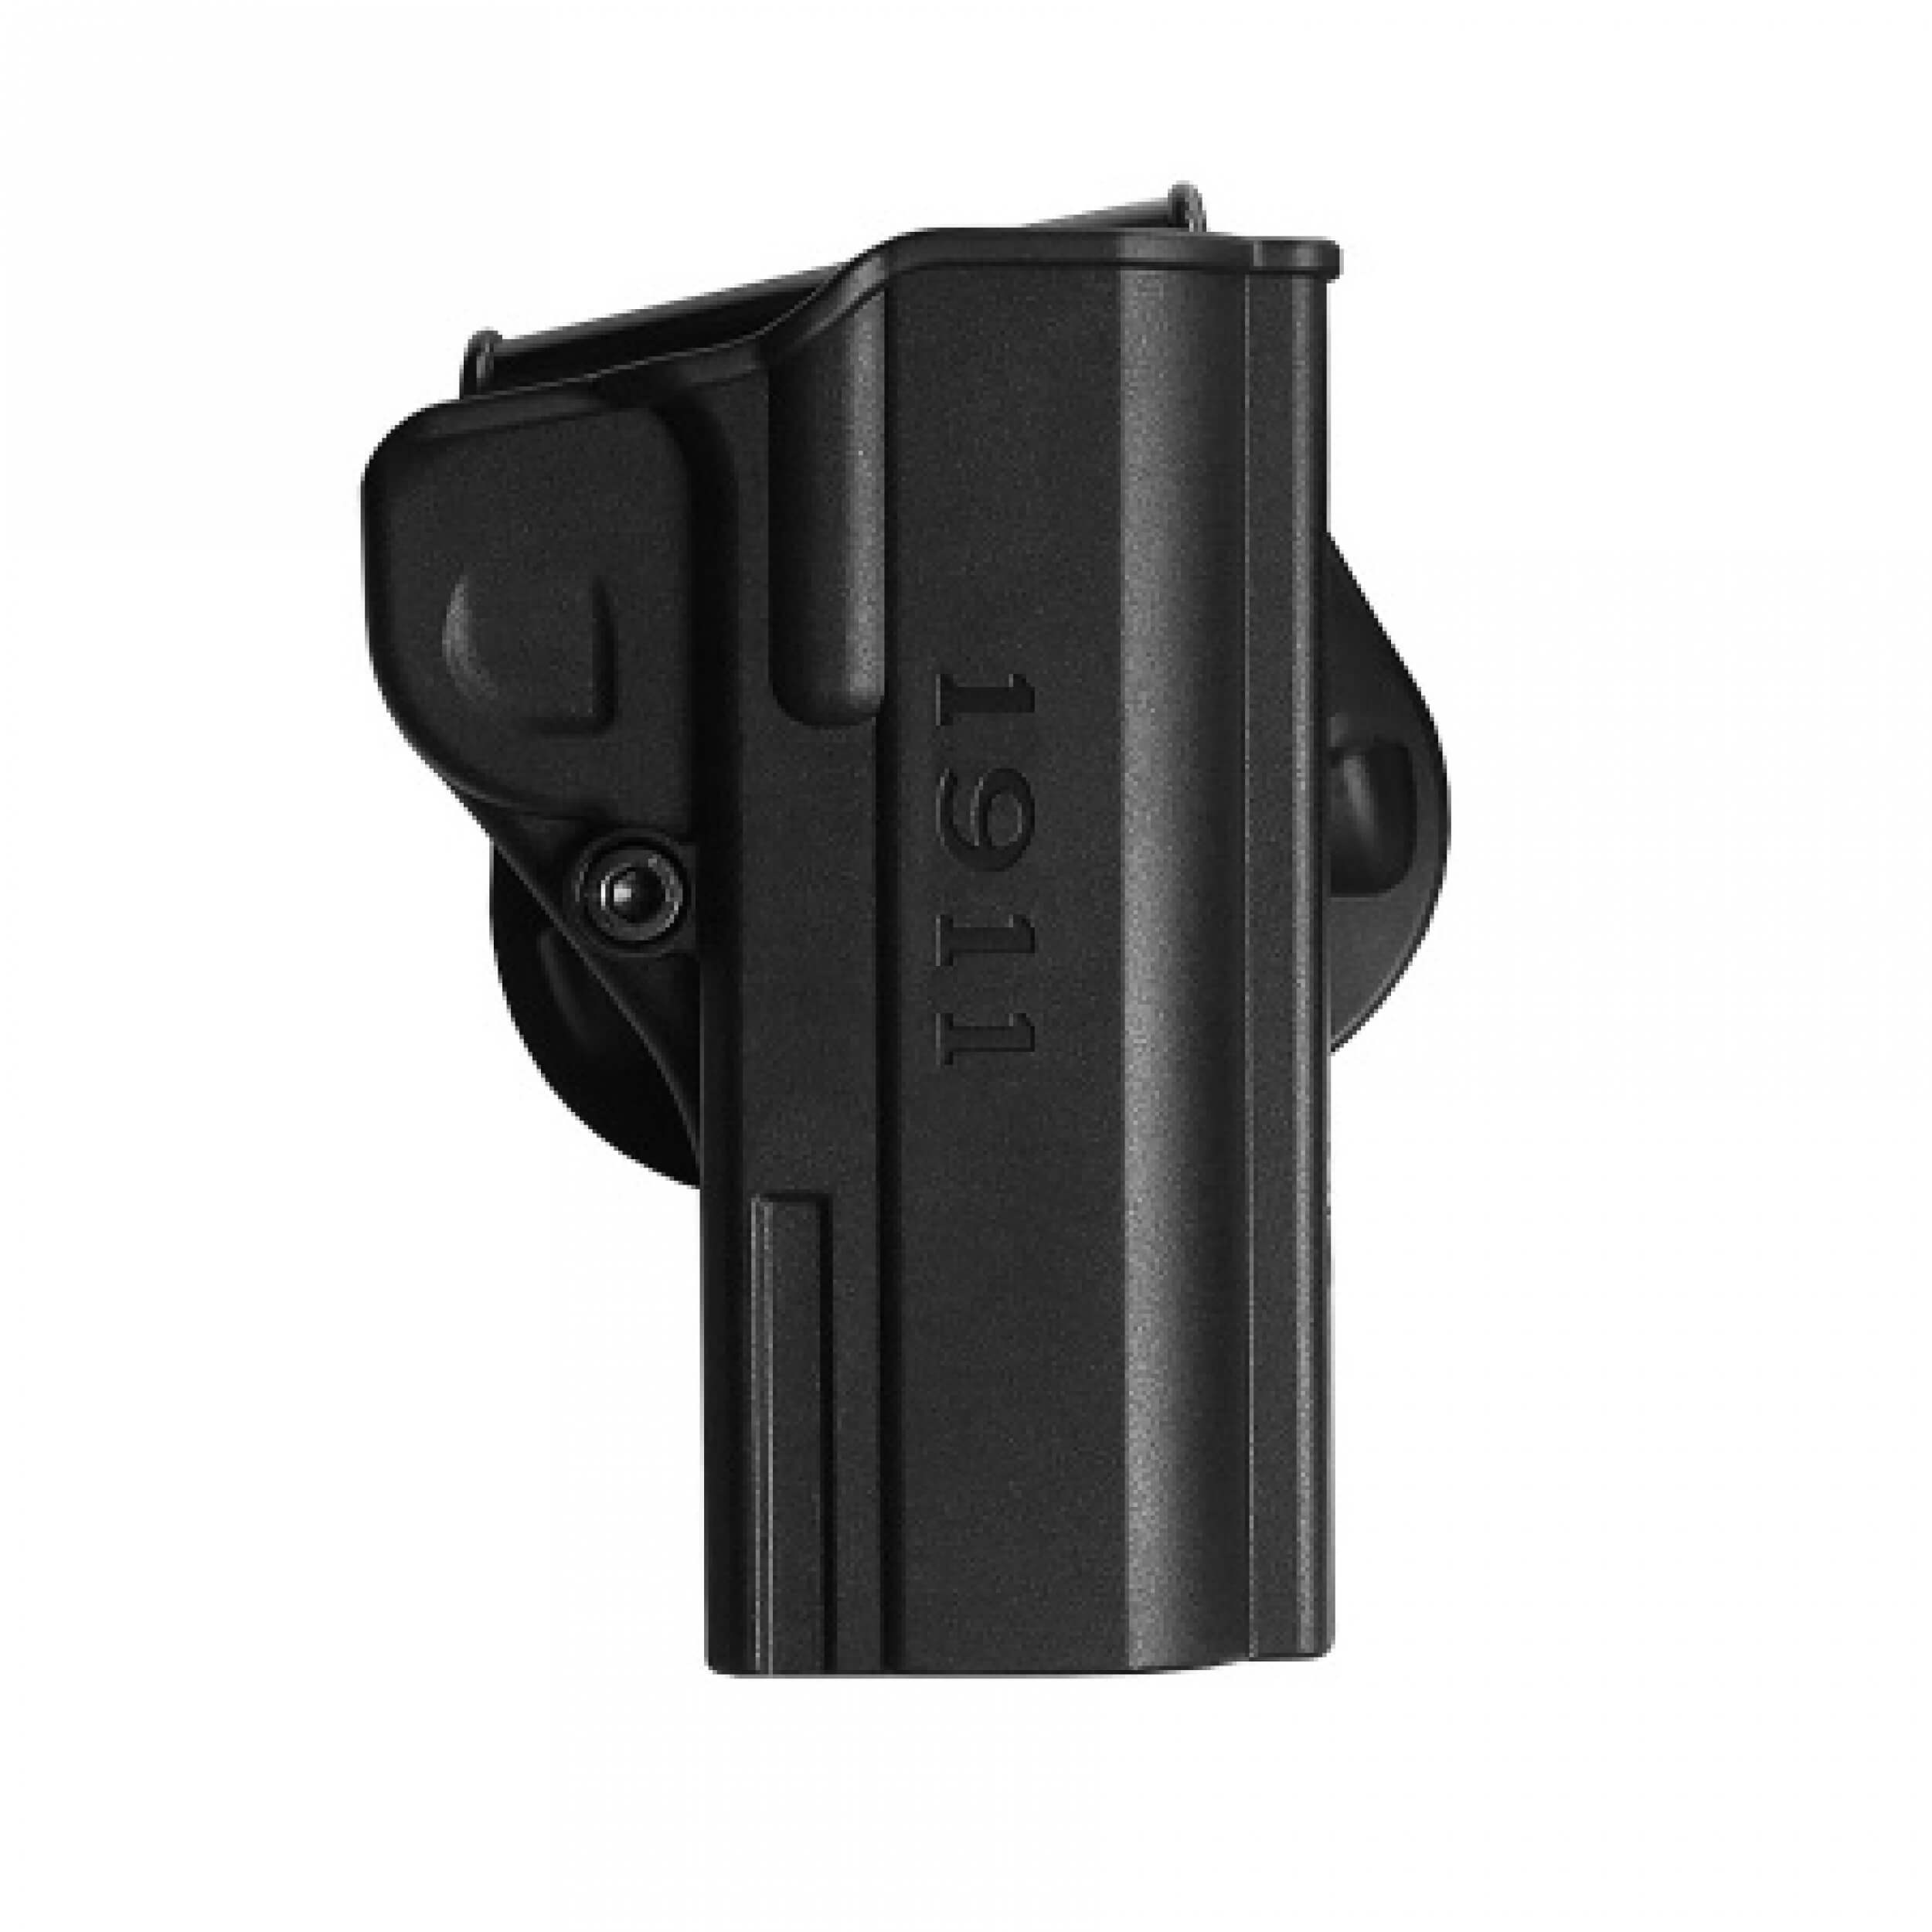 One Piece Paddle Holster 1911 Pistols